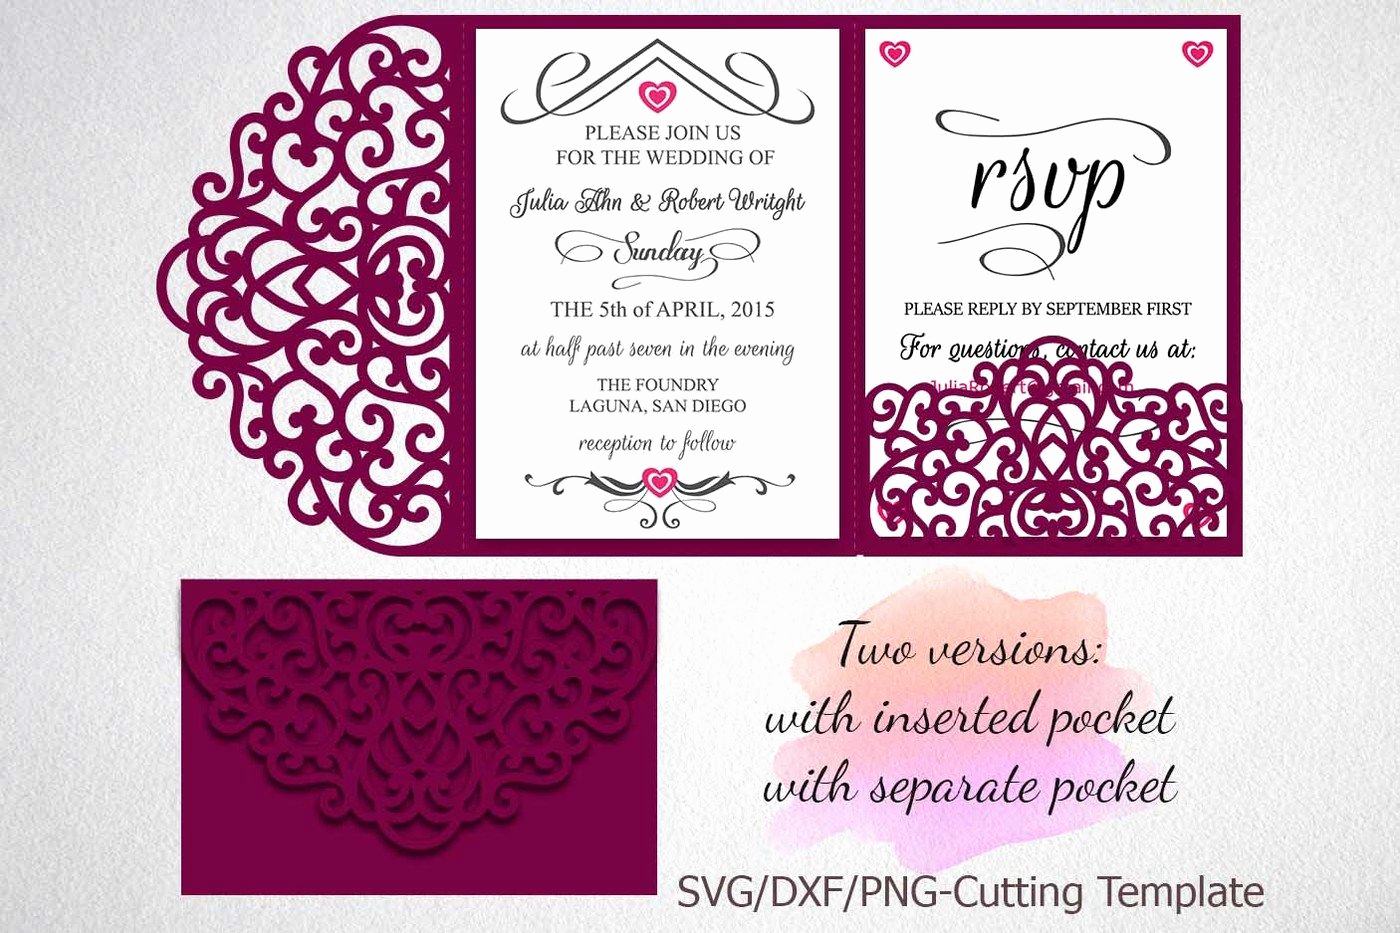 Wedding Invitation Envelope Templates Awesome Tri Fold Wedding Invitation Pocket Envelope Svg Template